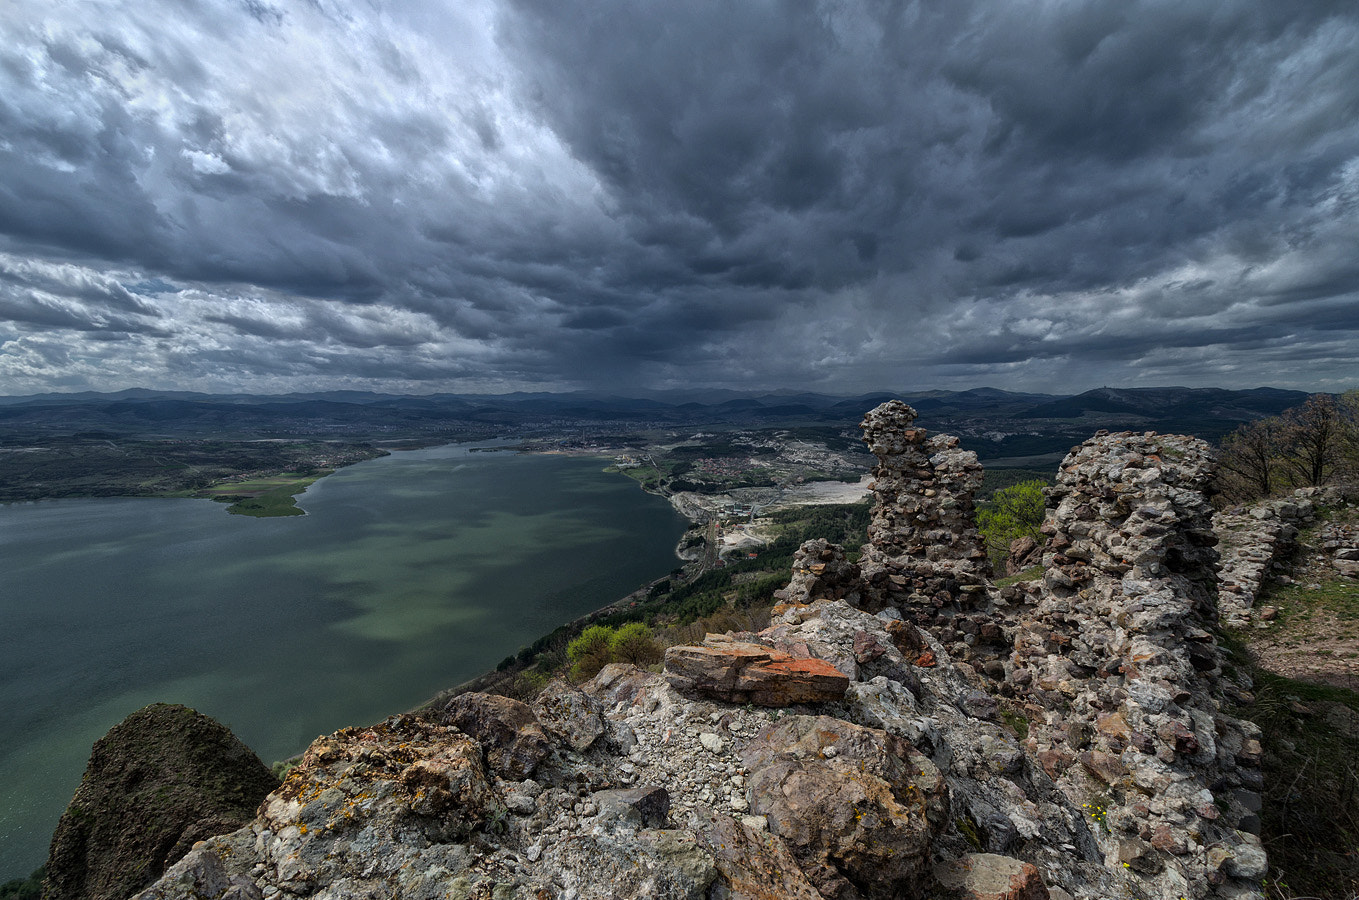 Photograph Before the Storm by Vasil Anastasovski on 500px